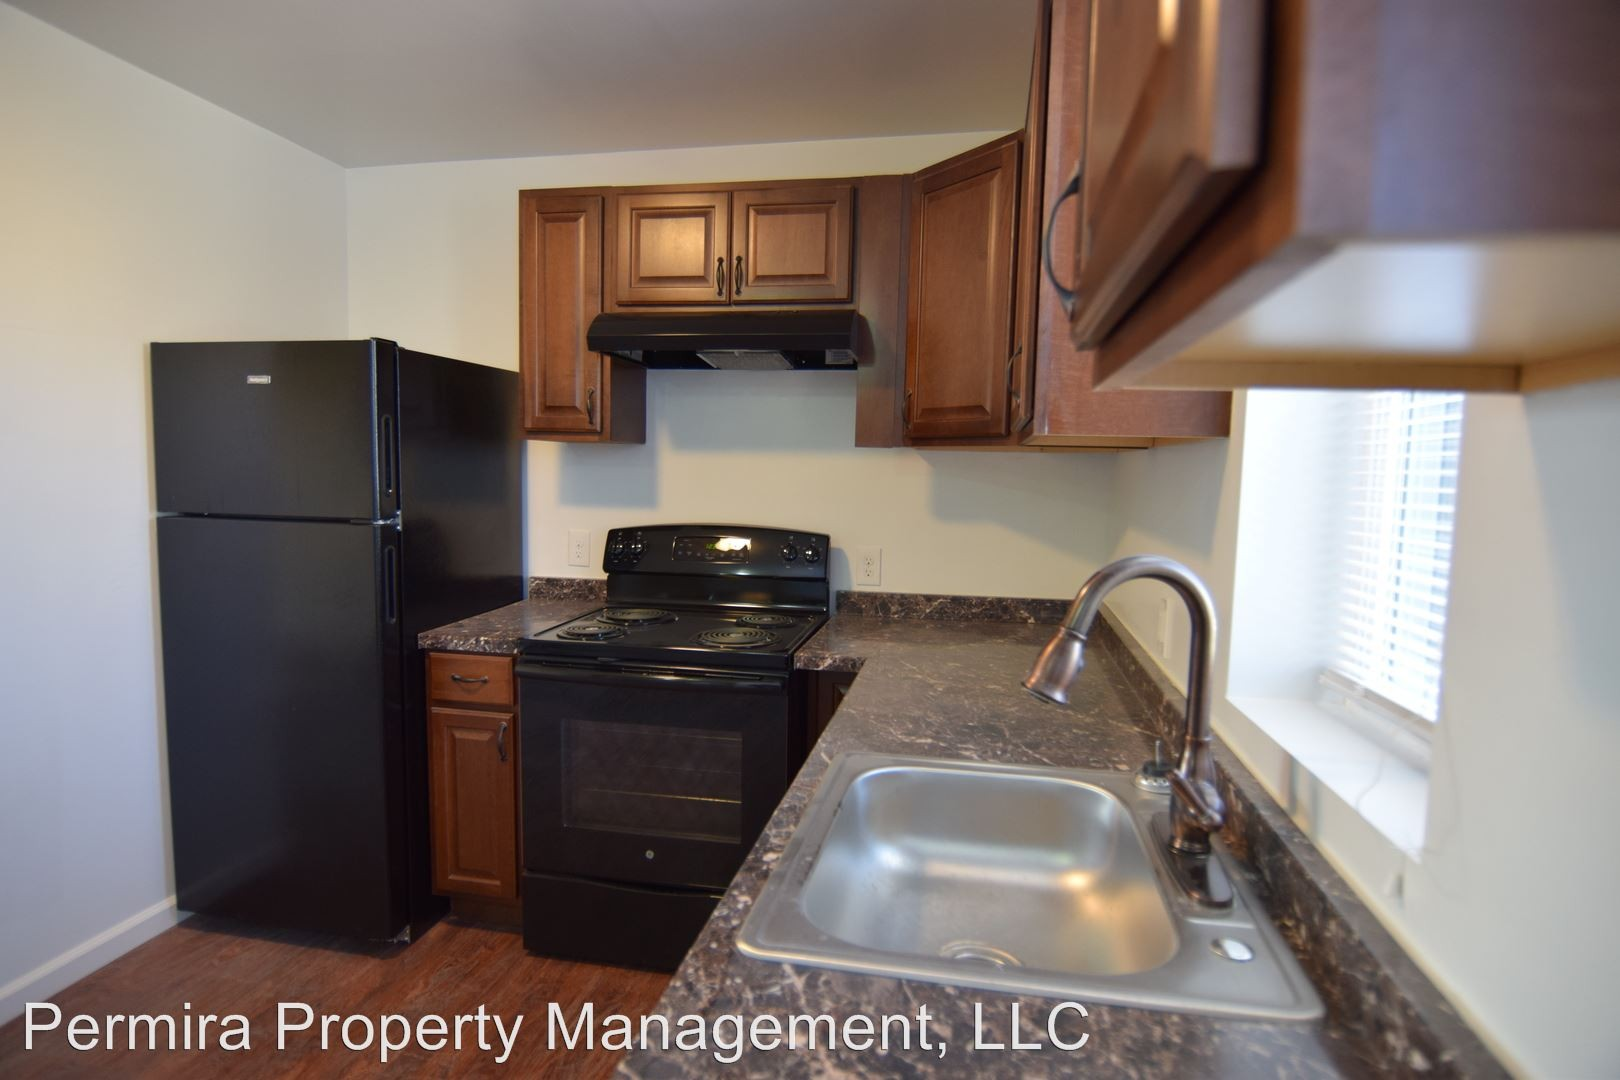 4300 liberty heights ave, baltimore, md 21207 - apartment rental